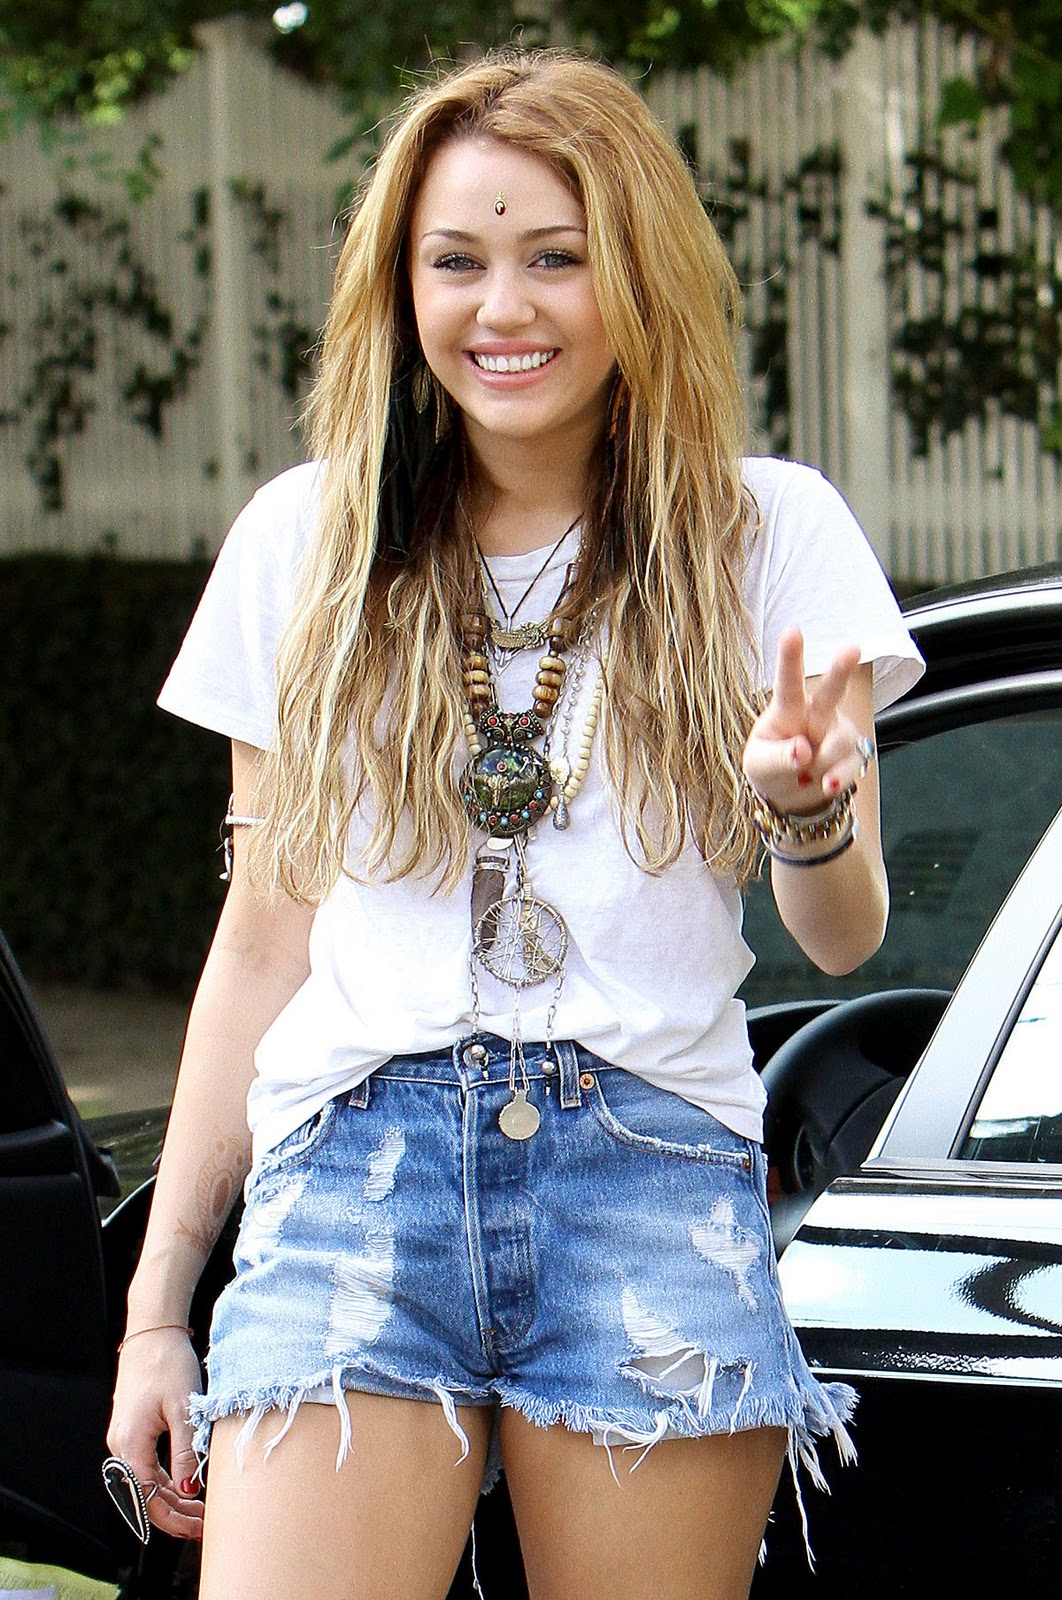 girls milan miley cyrus young hot sexy pretty